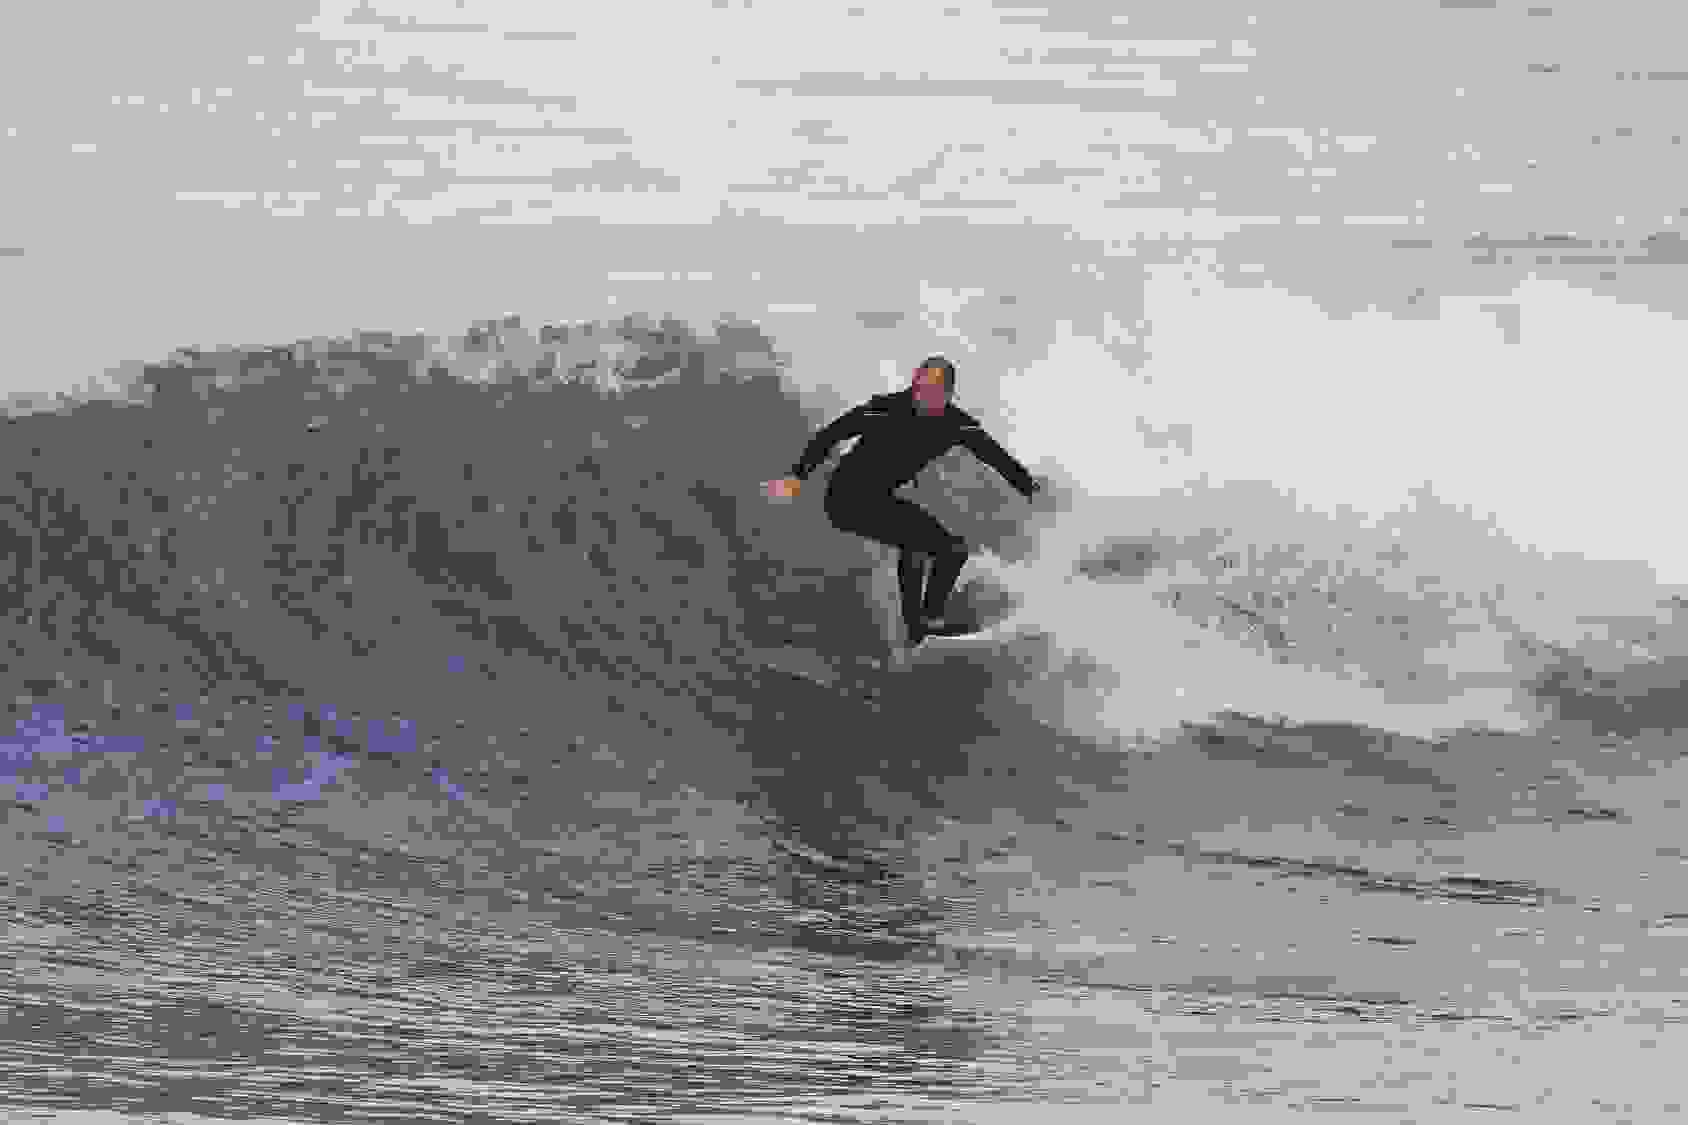 When looking where to buy cbd in Santa Cruz, the surfers riding waves are a tell tale sign.